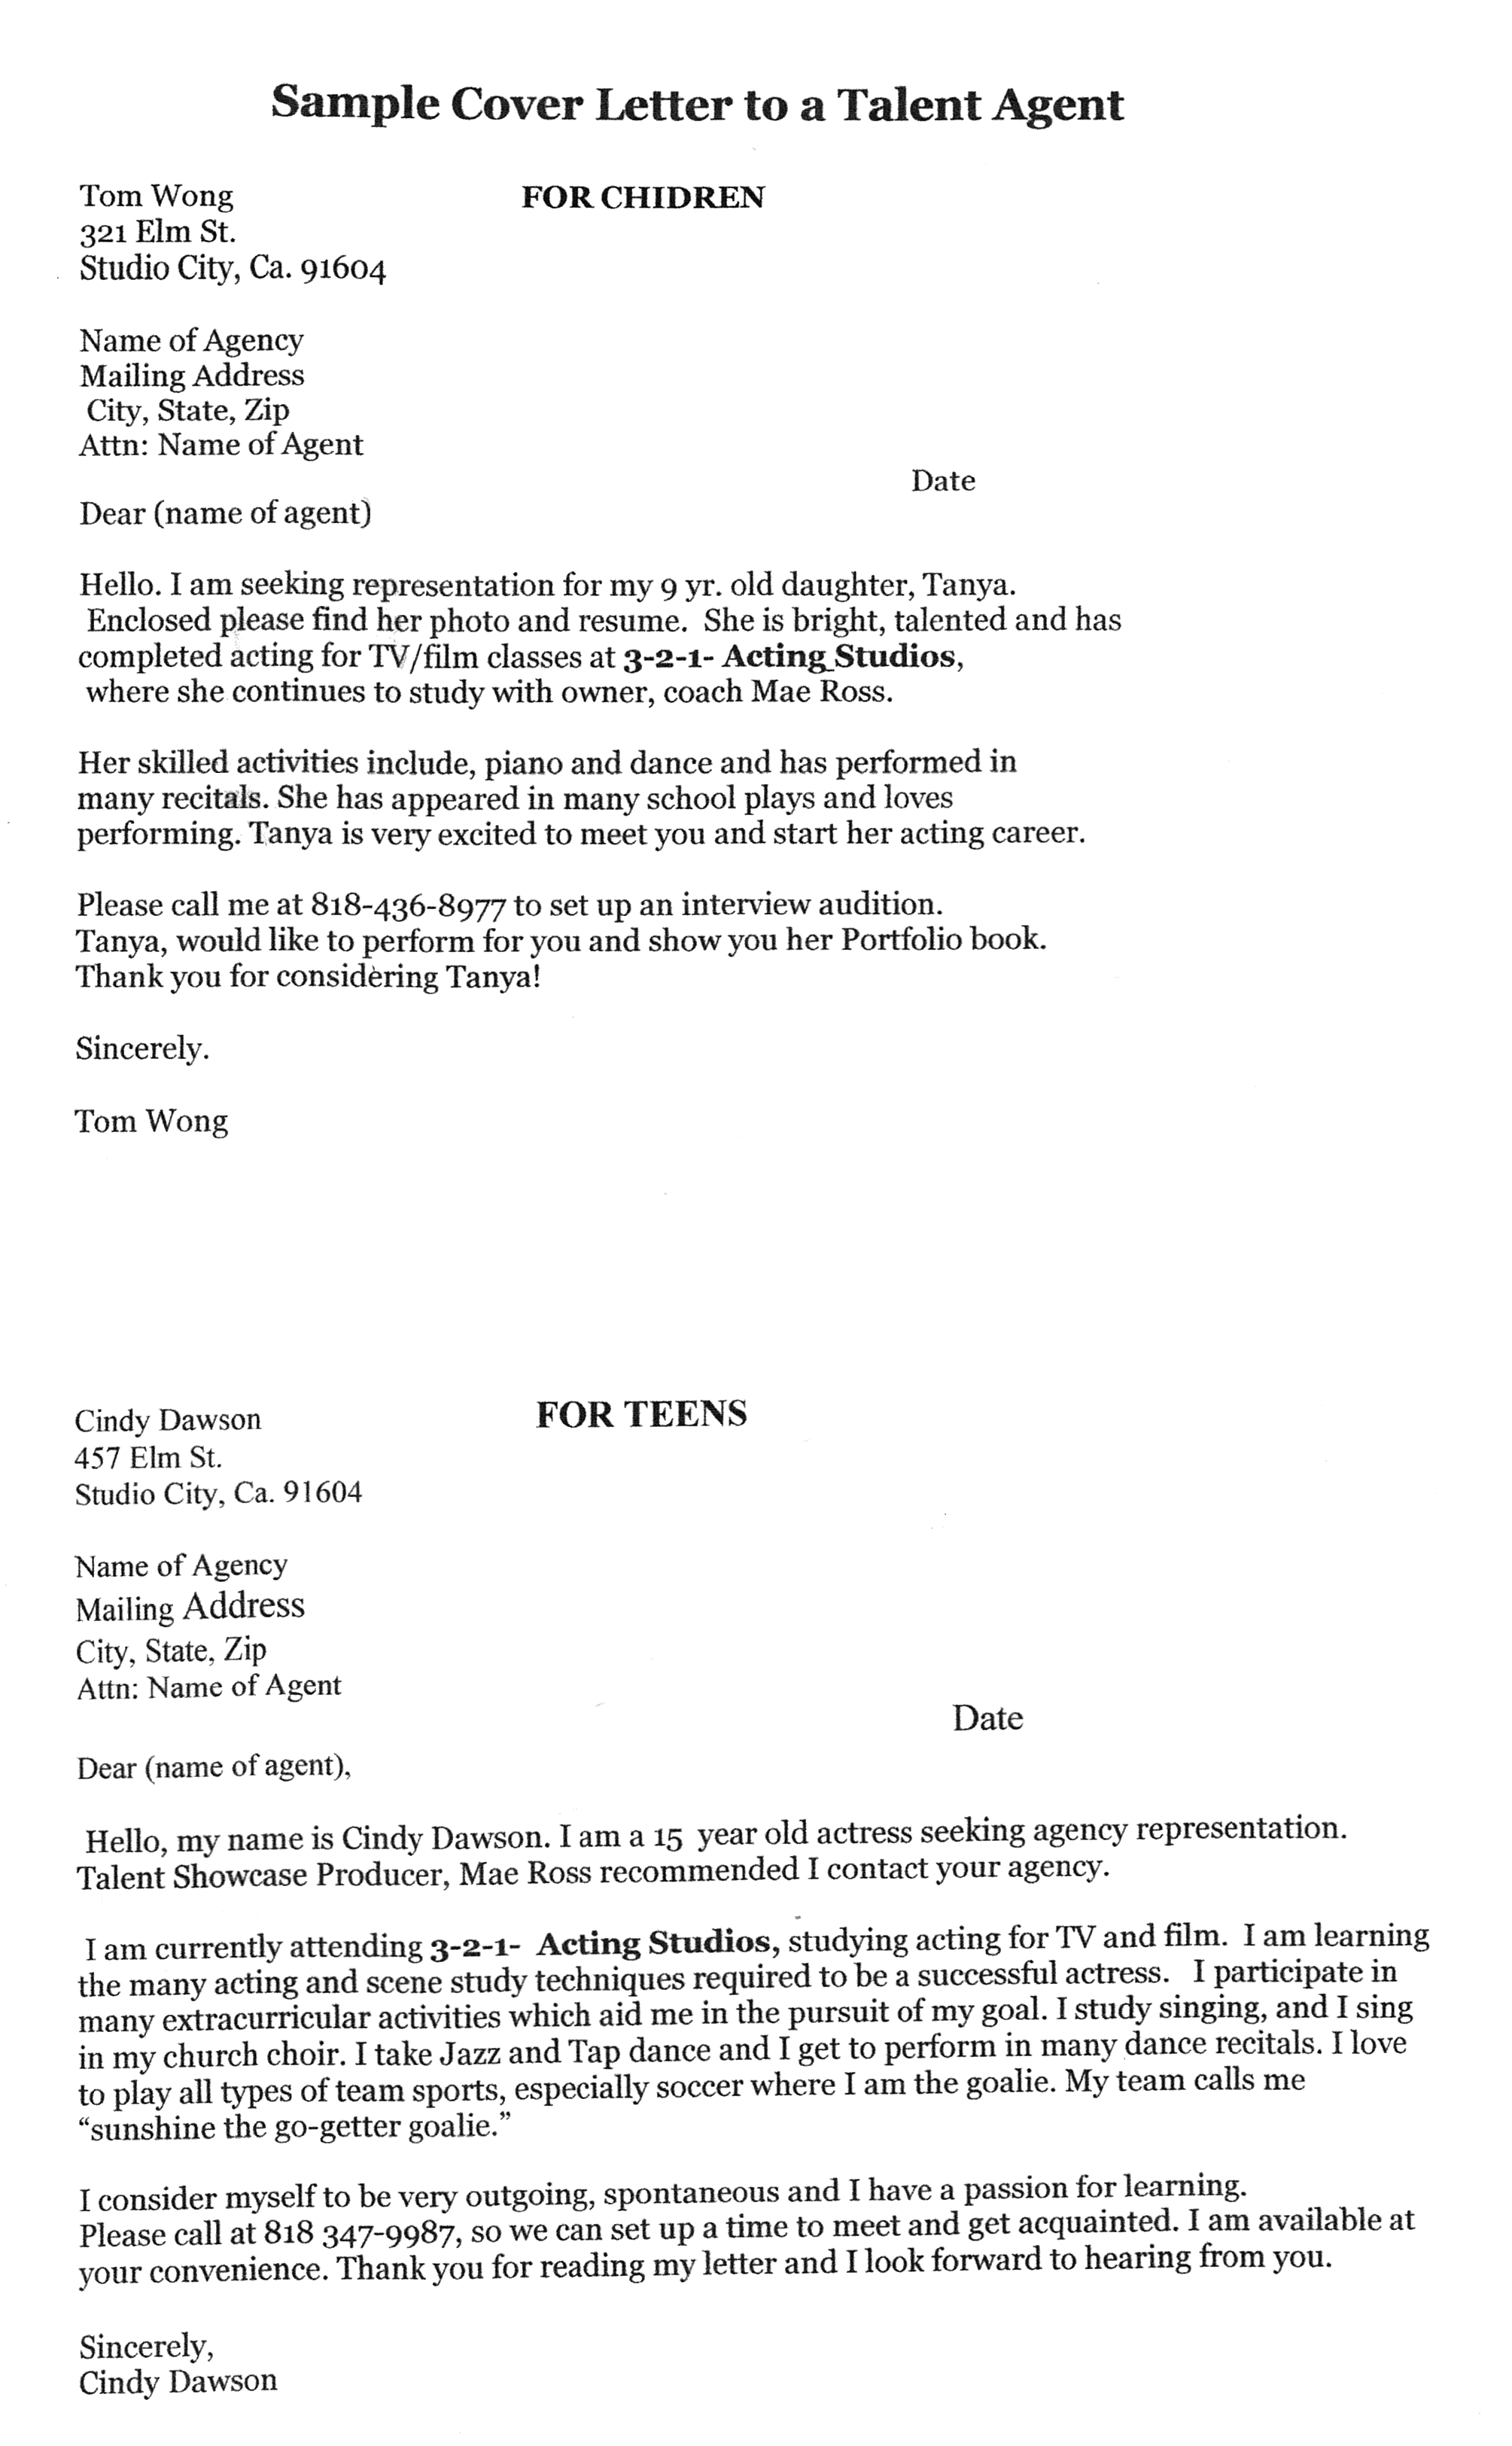 Good Sample Cover Letters To Talent Agents  A Good Cover Letter